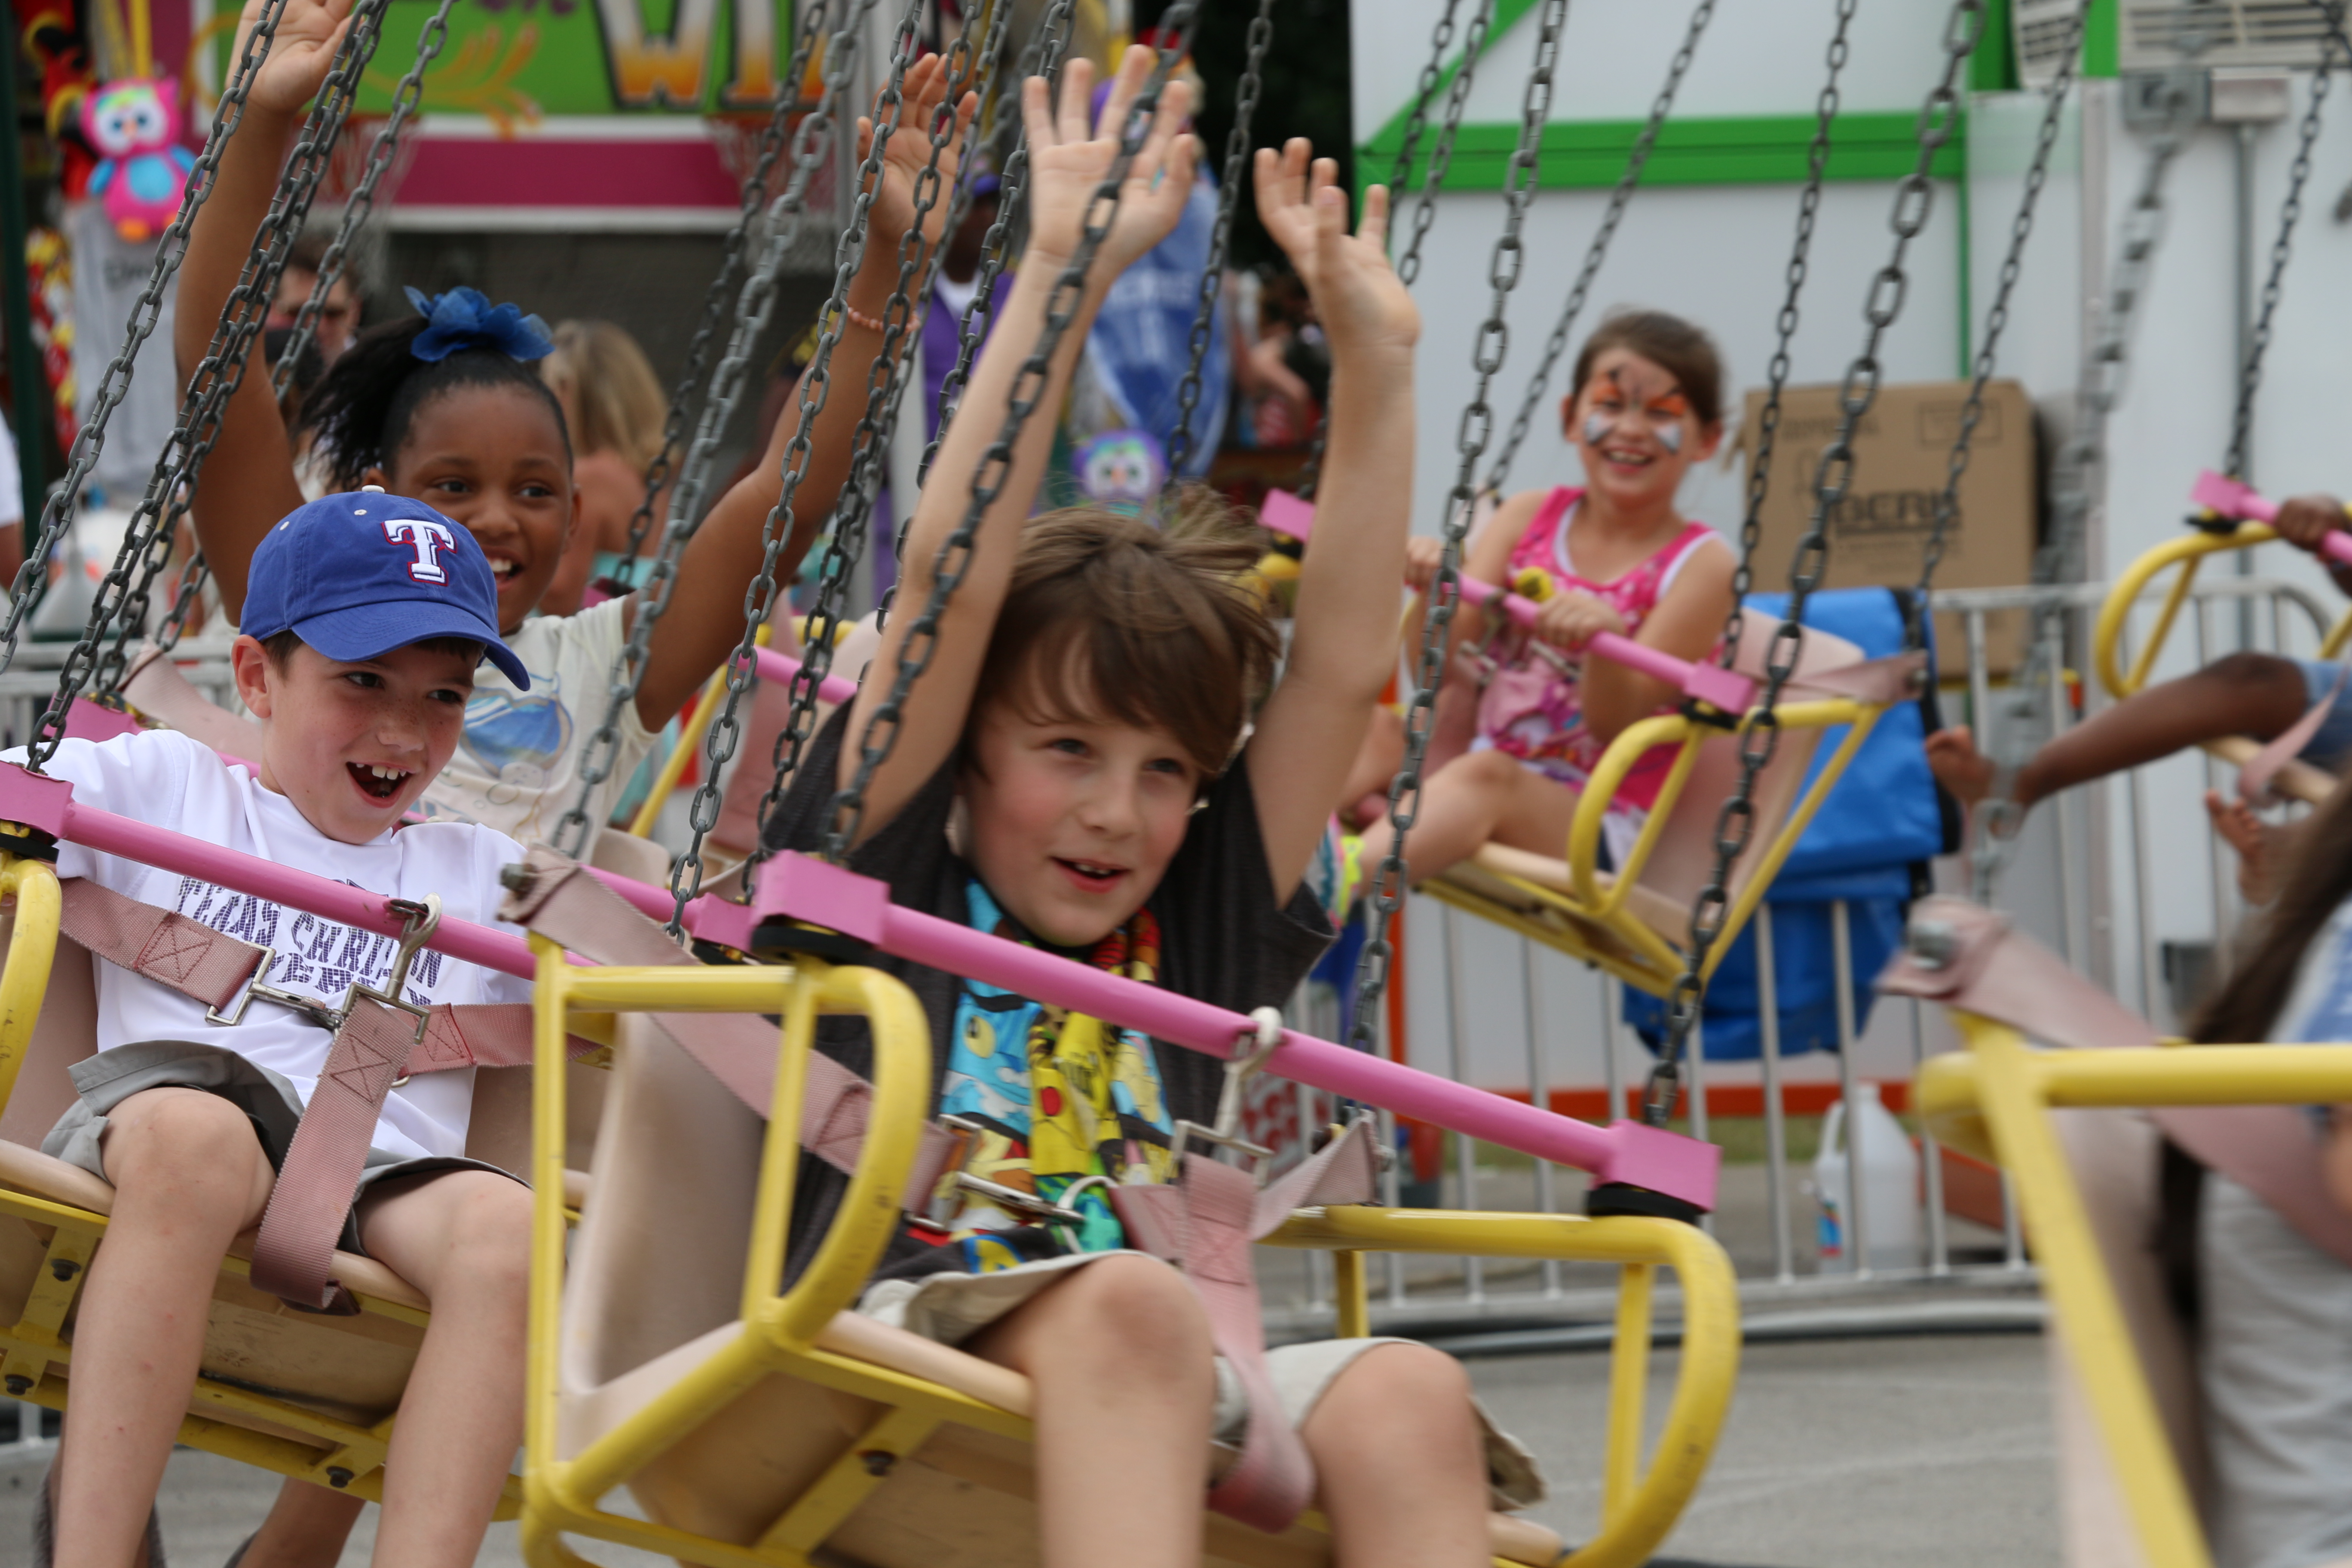 Go For A Ride at GrapeFest